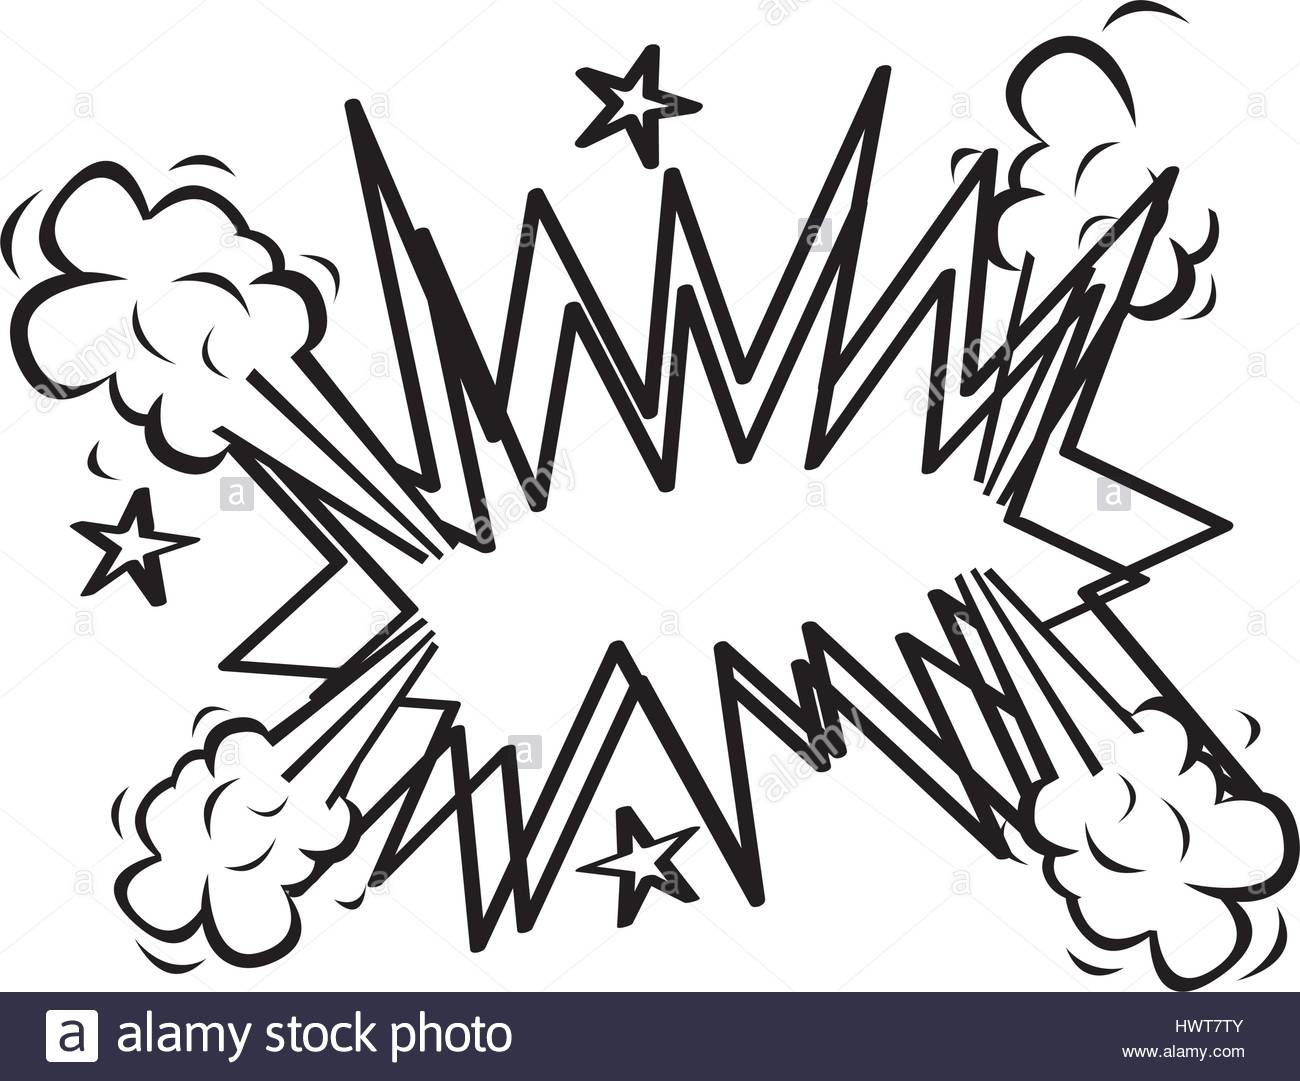 Explosion Clip Art Black and White Stock Photos & Images.